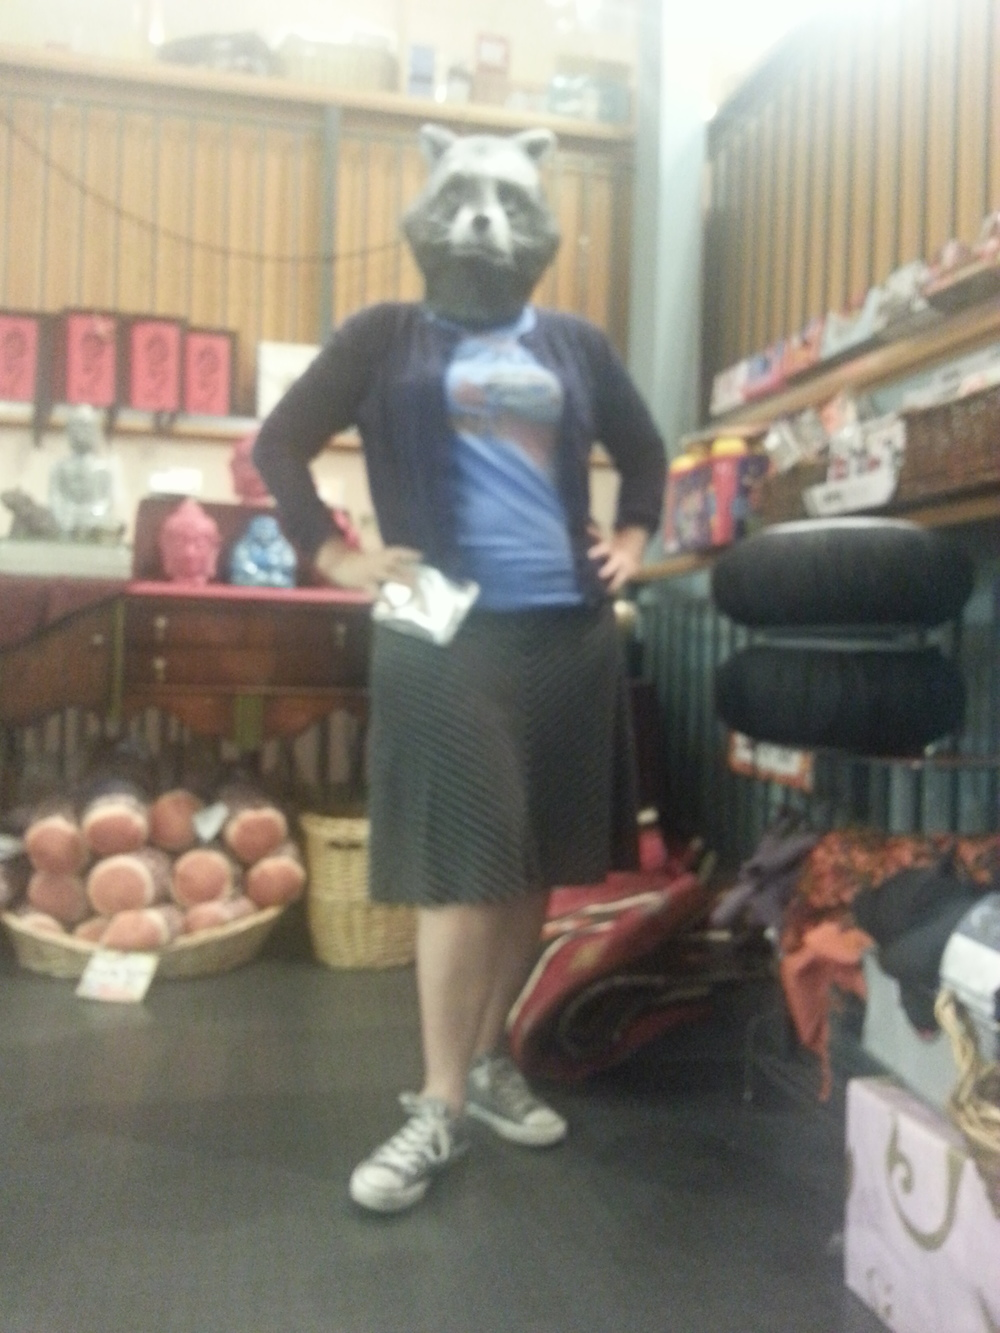 A fuzzy photo with bad lighting but it got a lot of mileage on OKCupid. Turns out men really like a woman in a raccoon mask and Chuck Taylors.